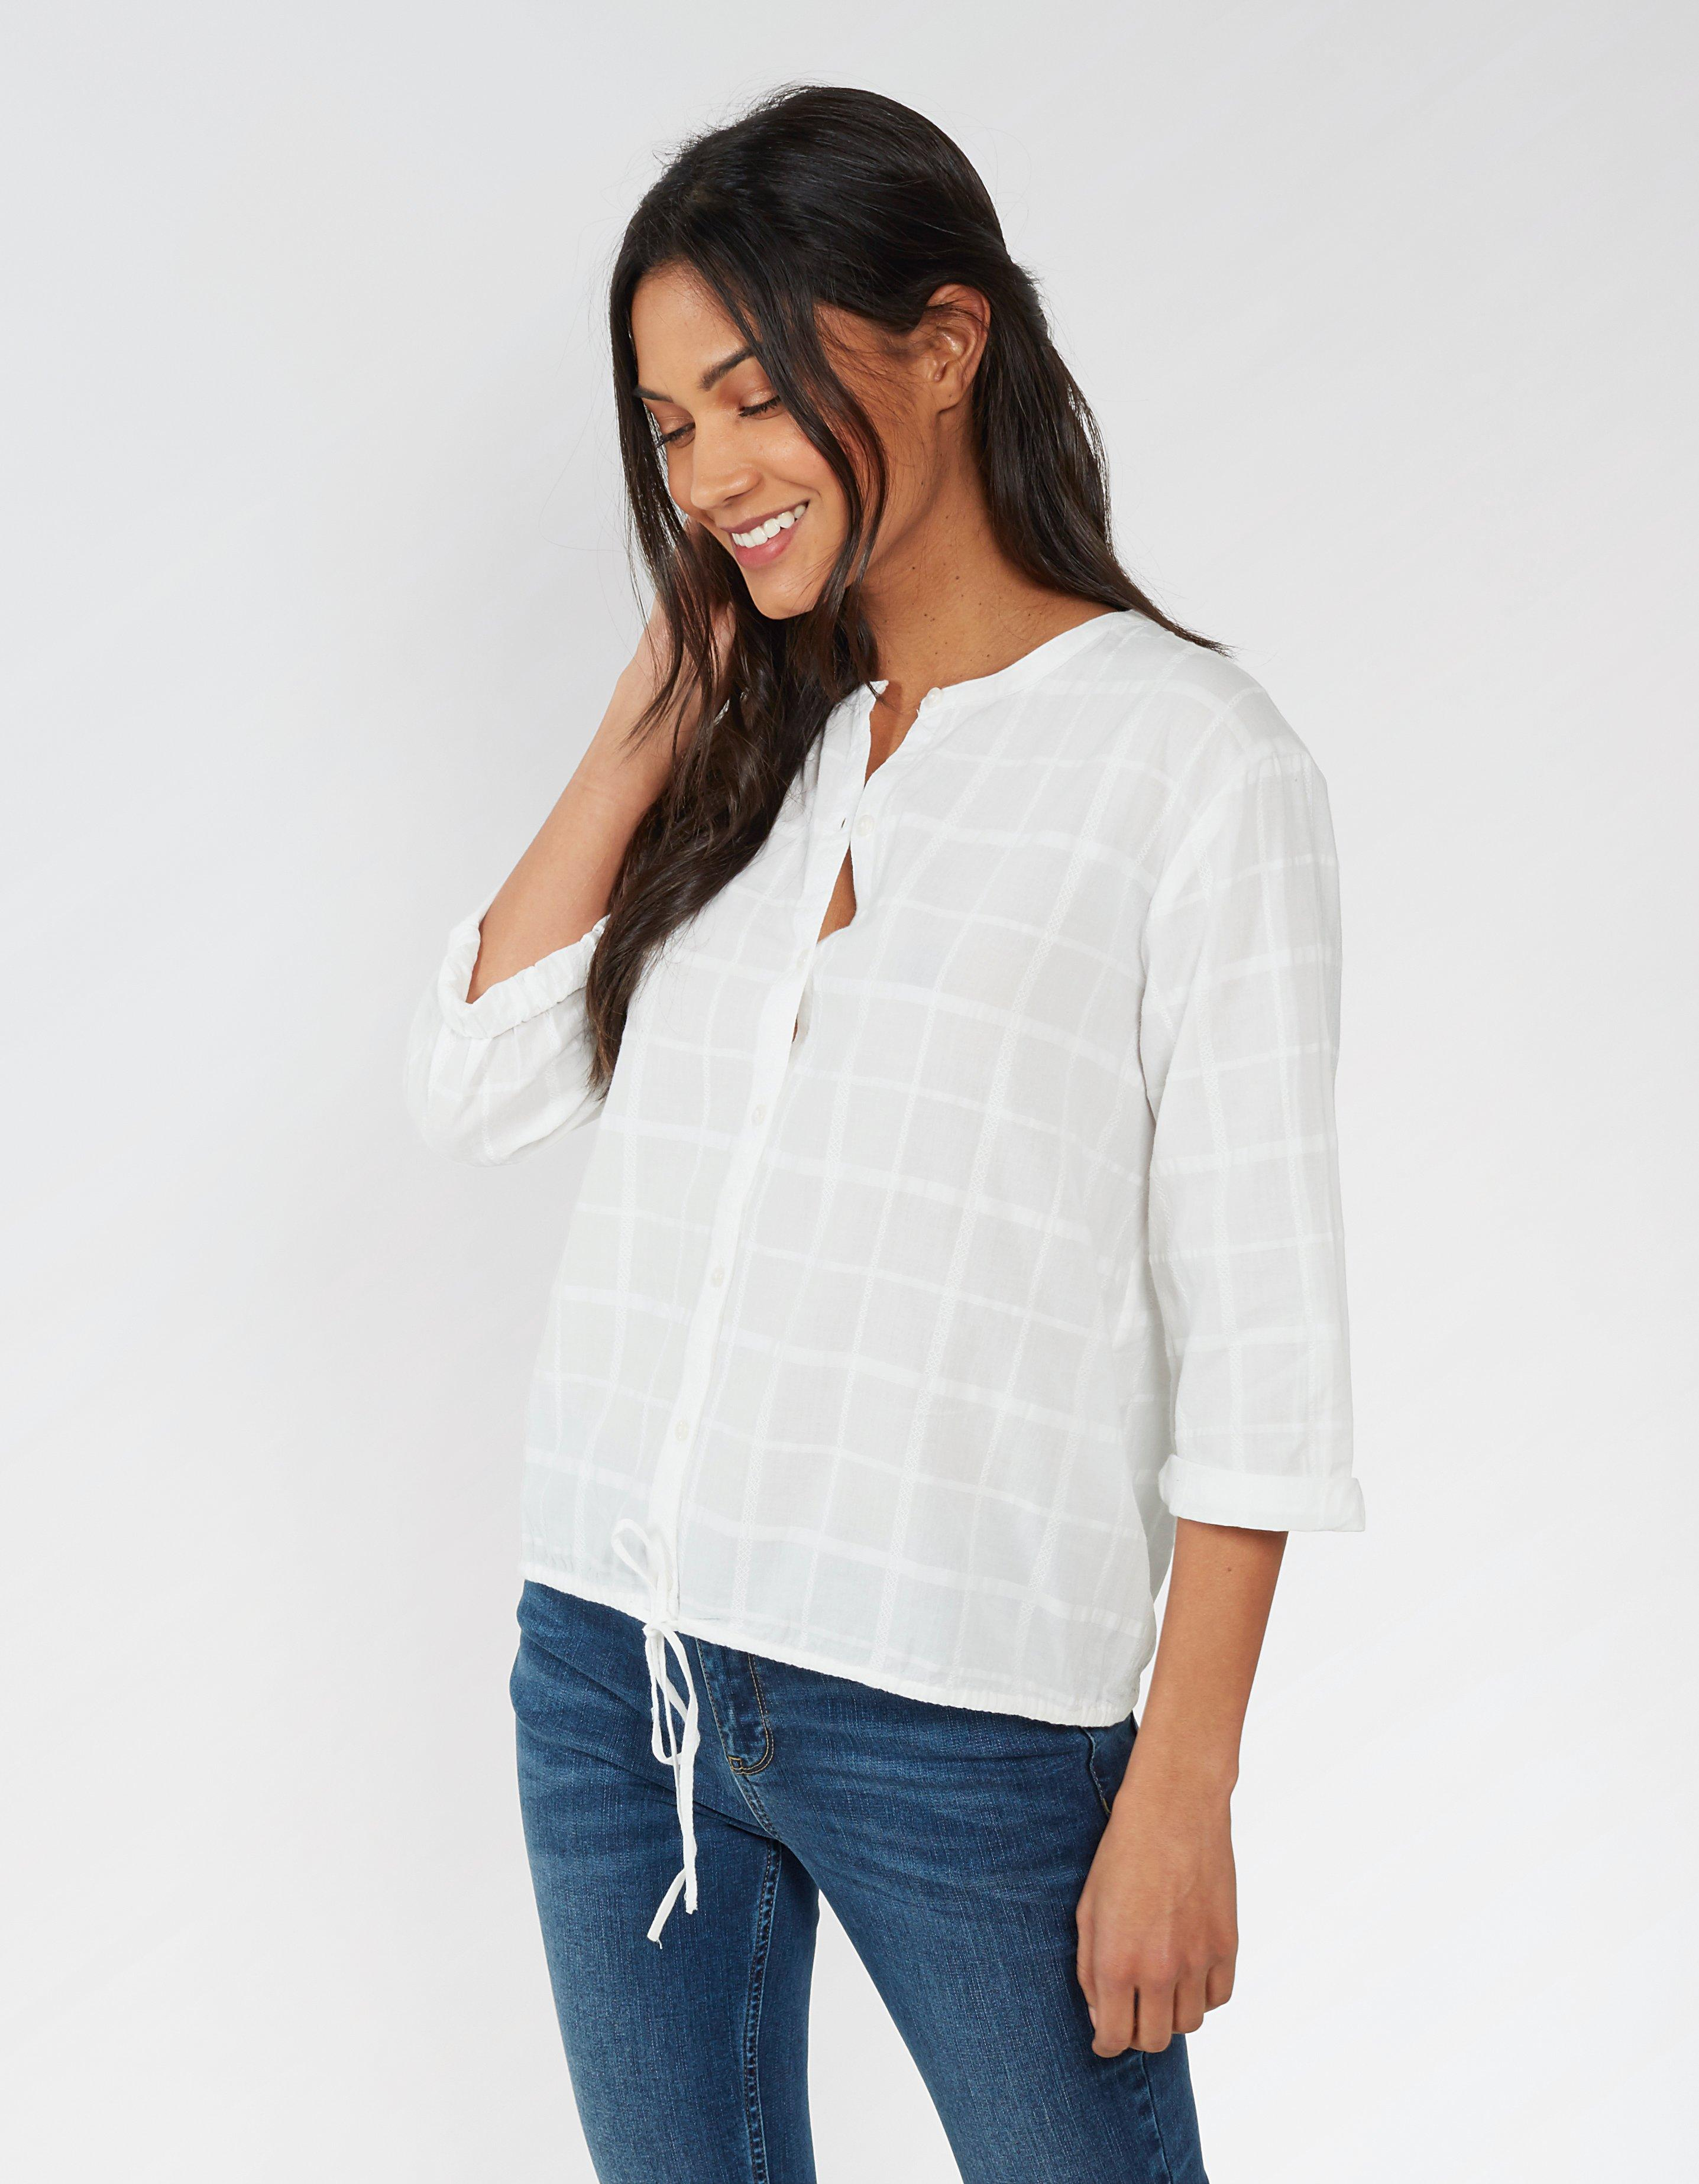 Ellie Check Tie Front Shirt